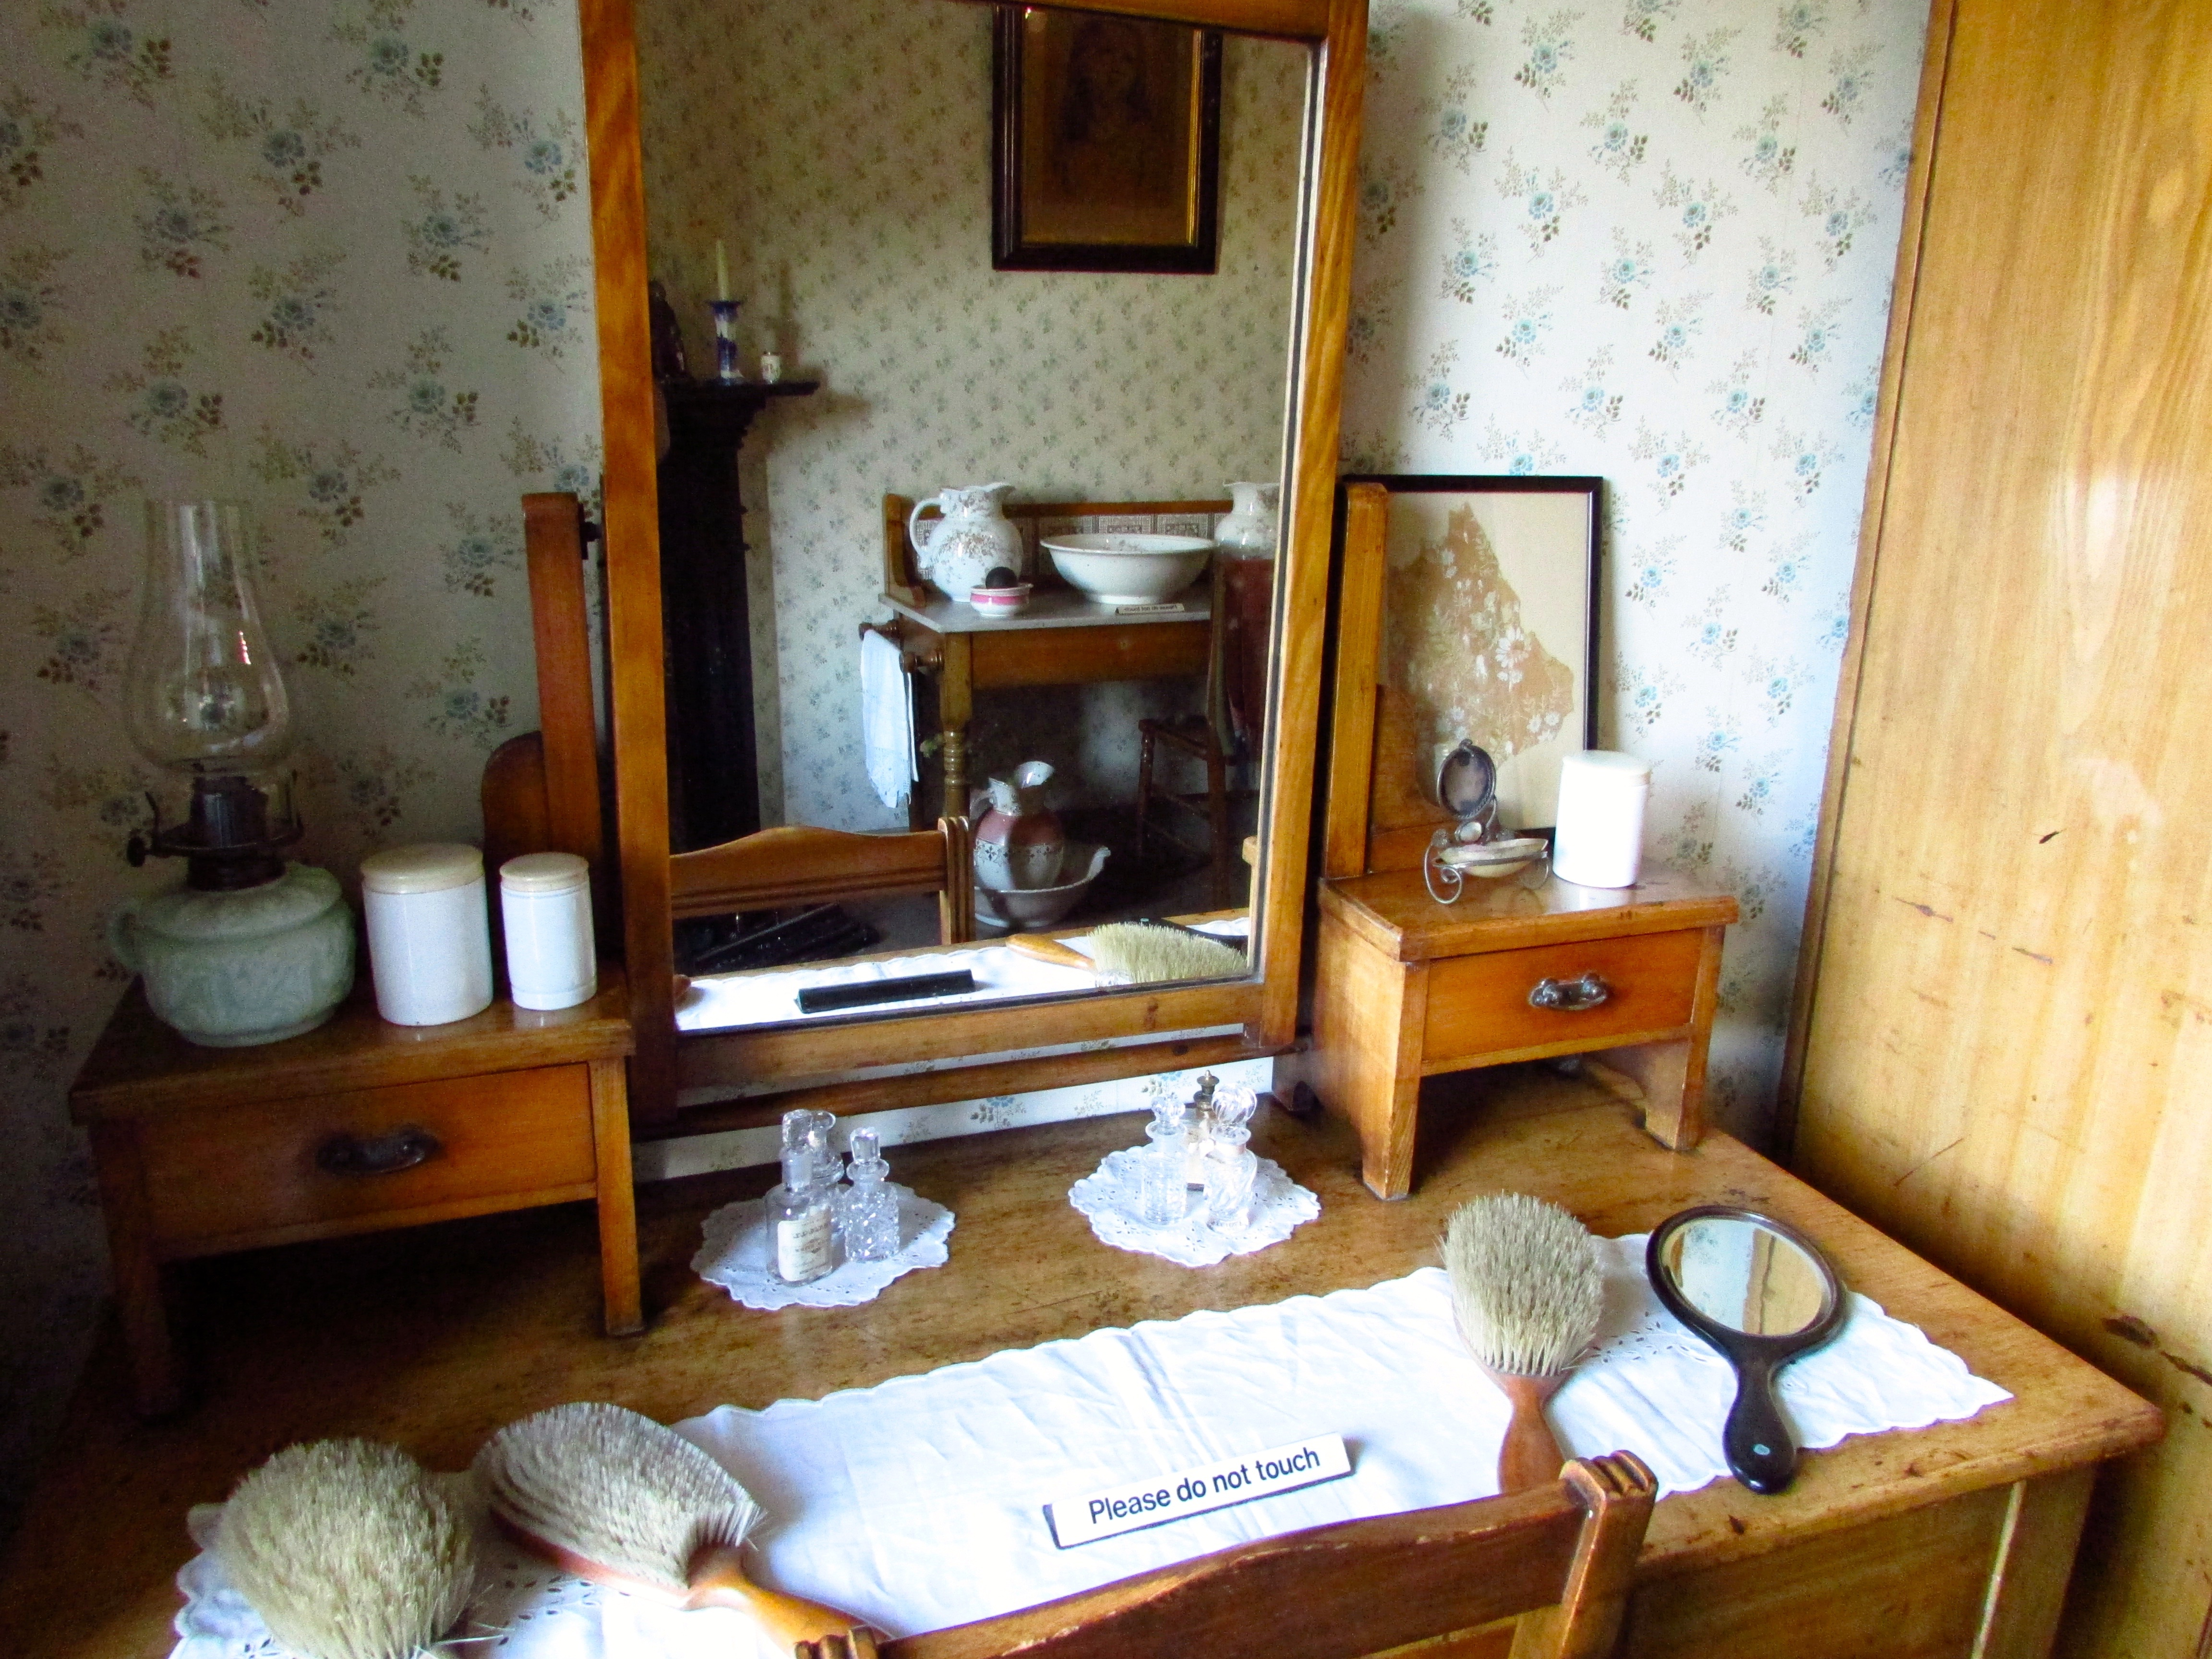 File:Dressing Table   The Bedroom   The Tenement House, 145 Buccleuch  Street,